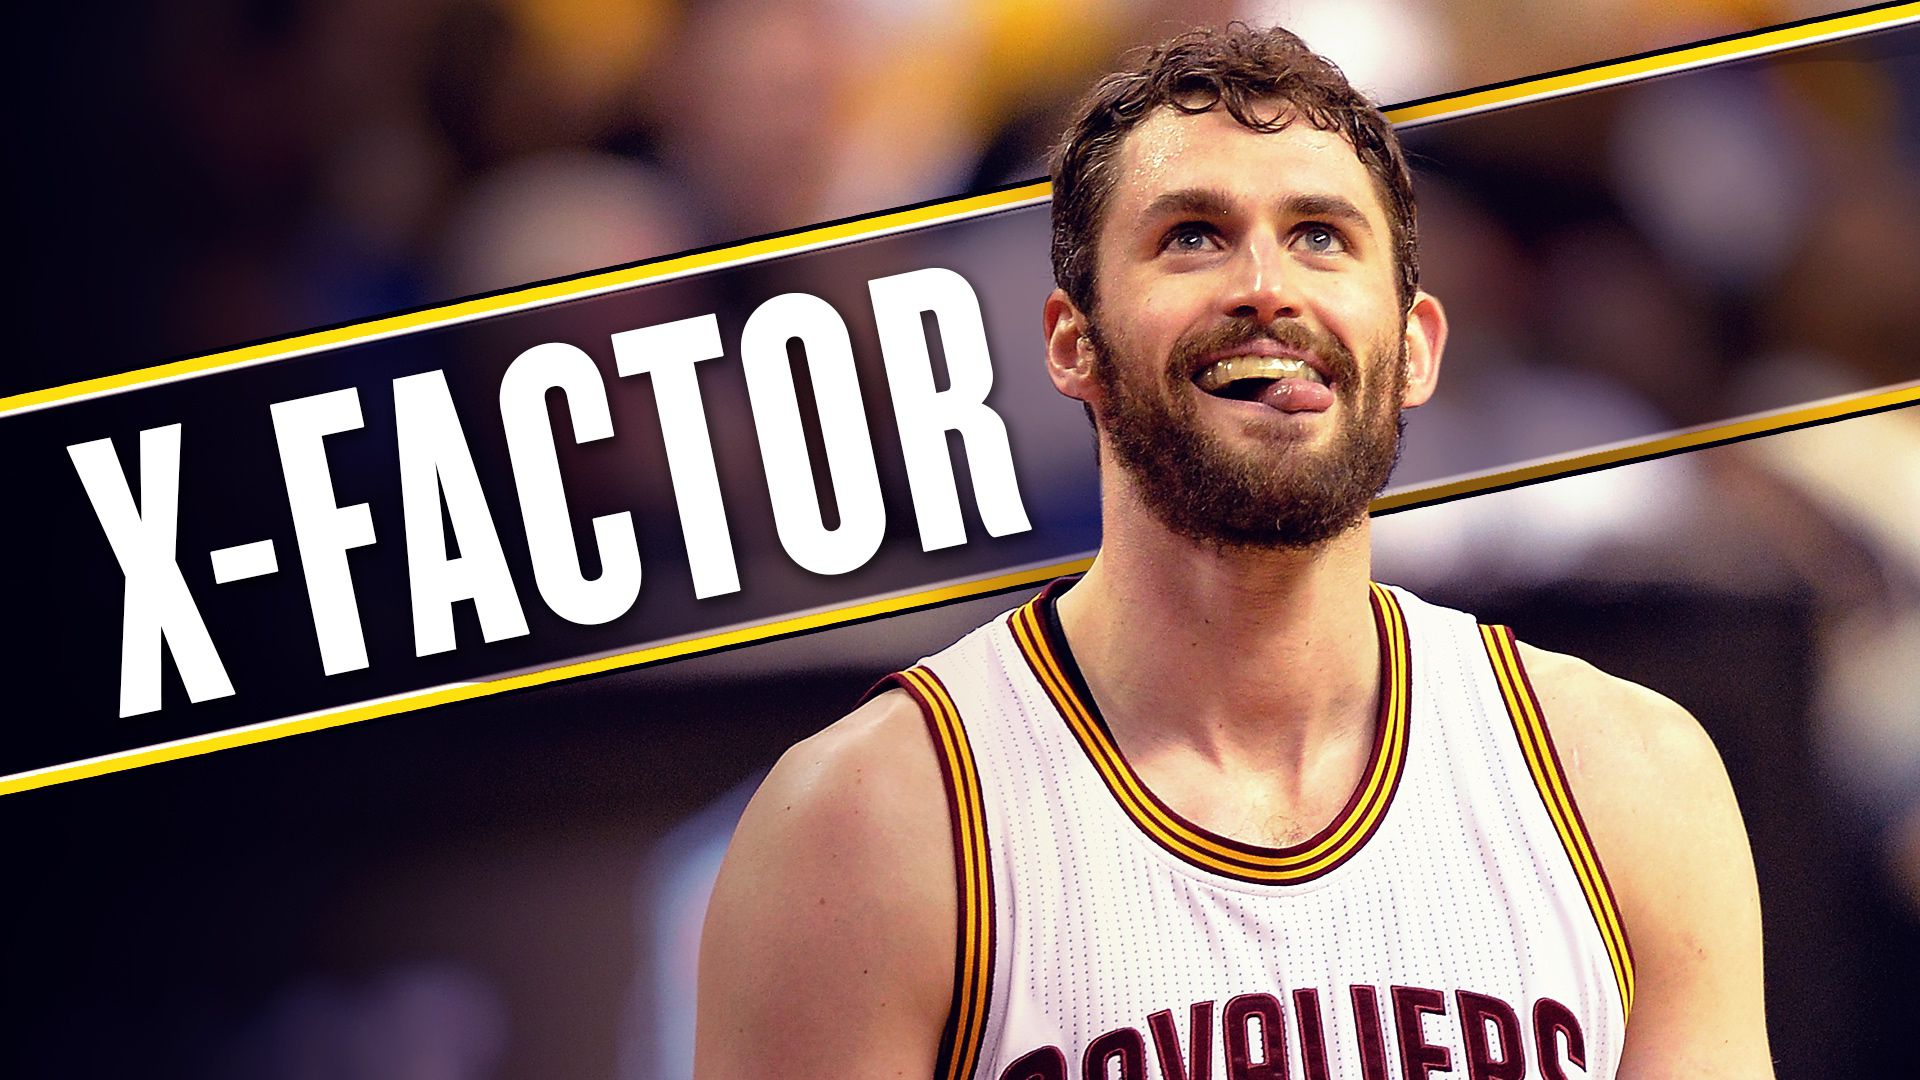 Kevin Love will decide the NBA Finals